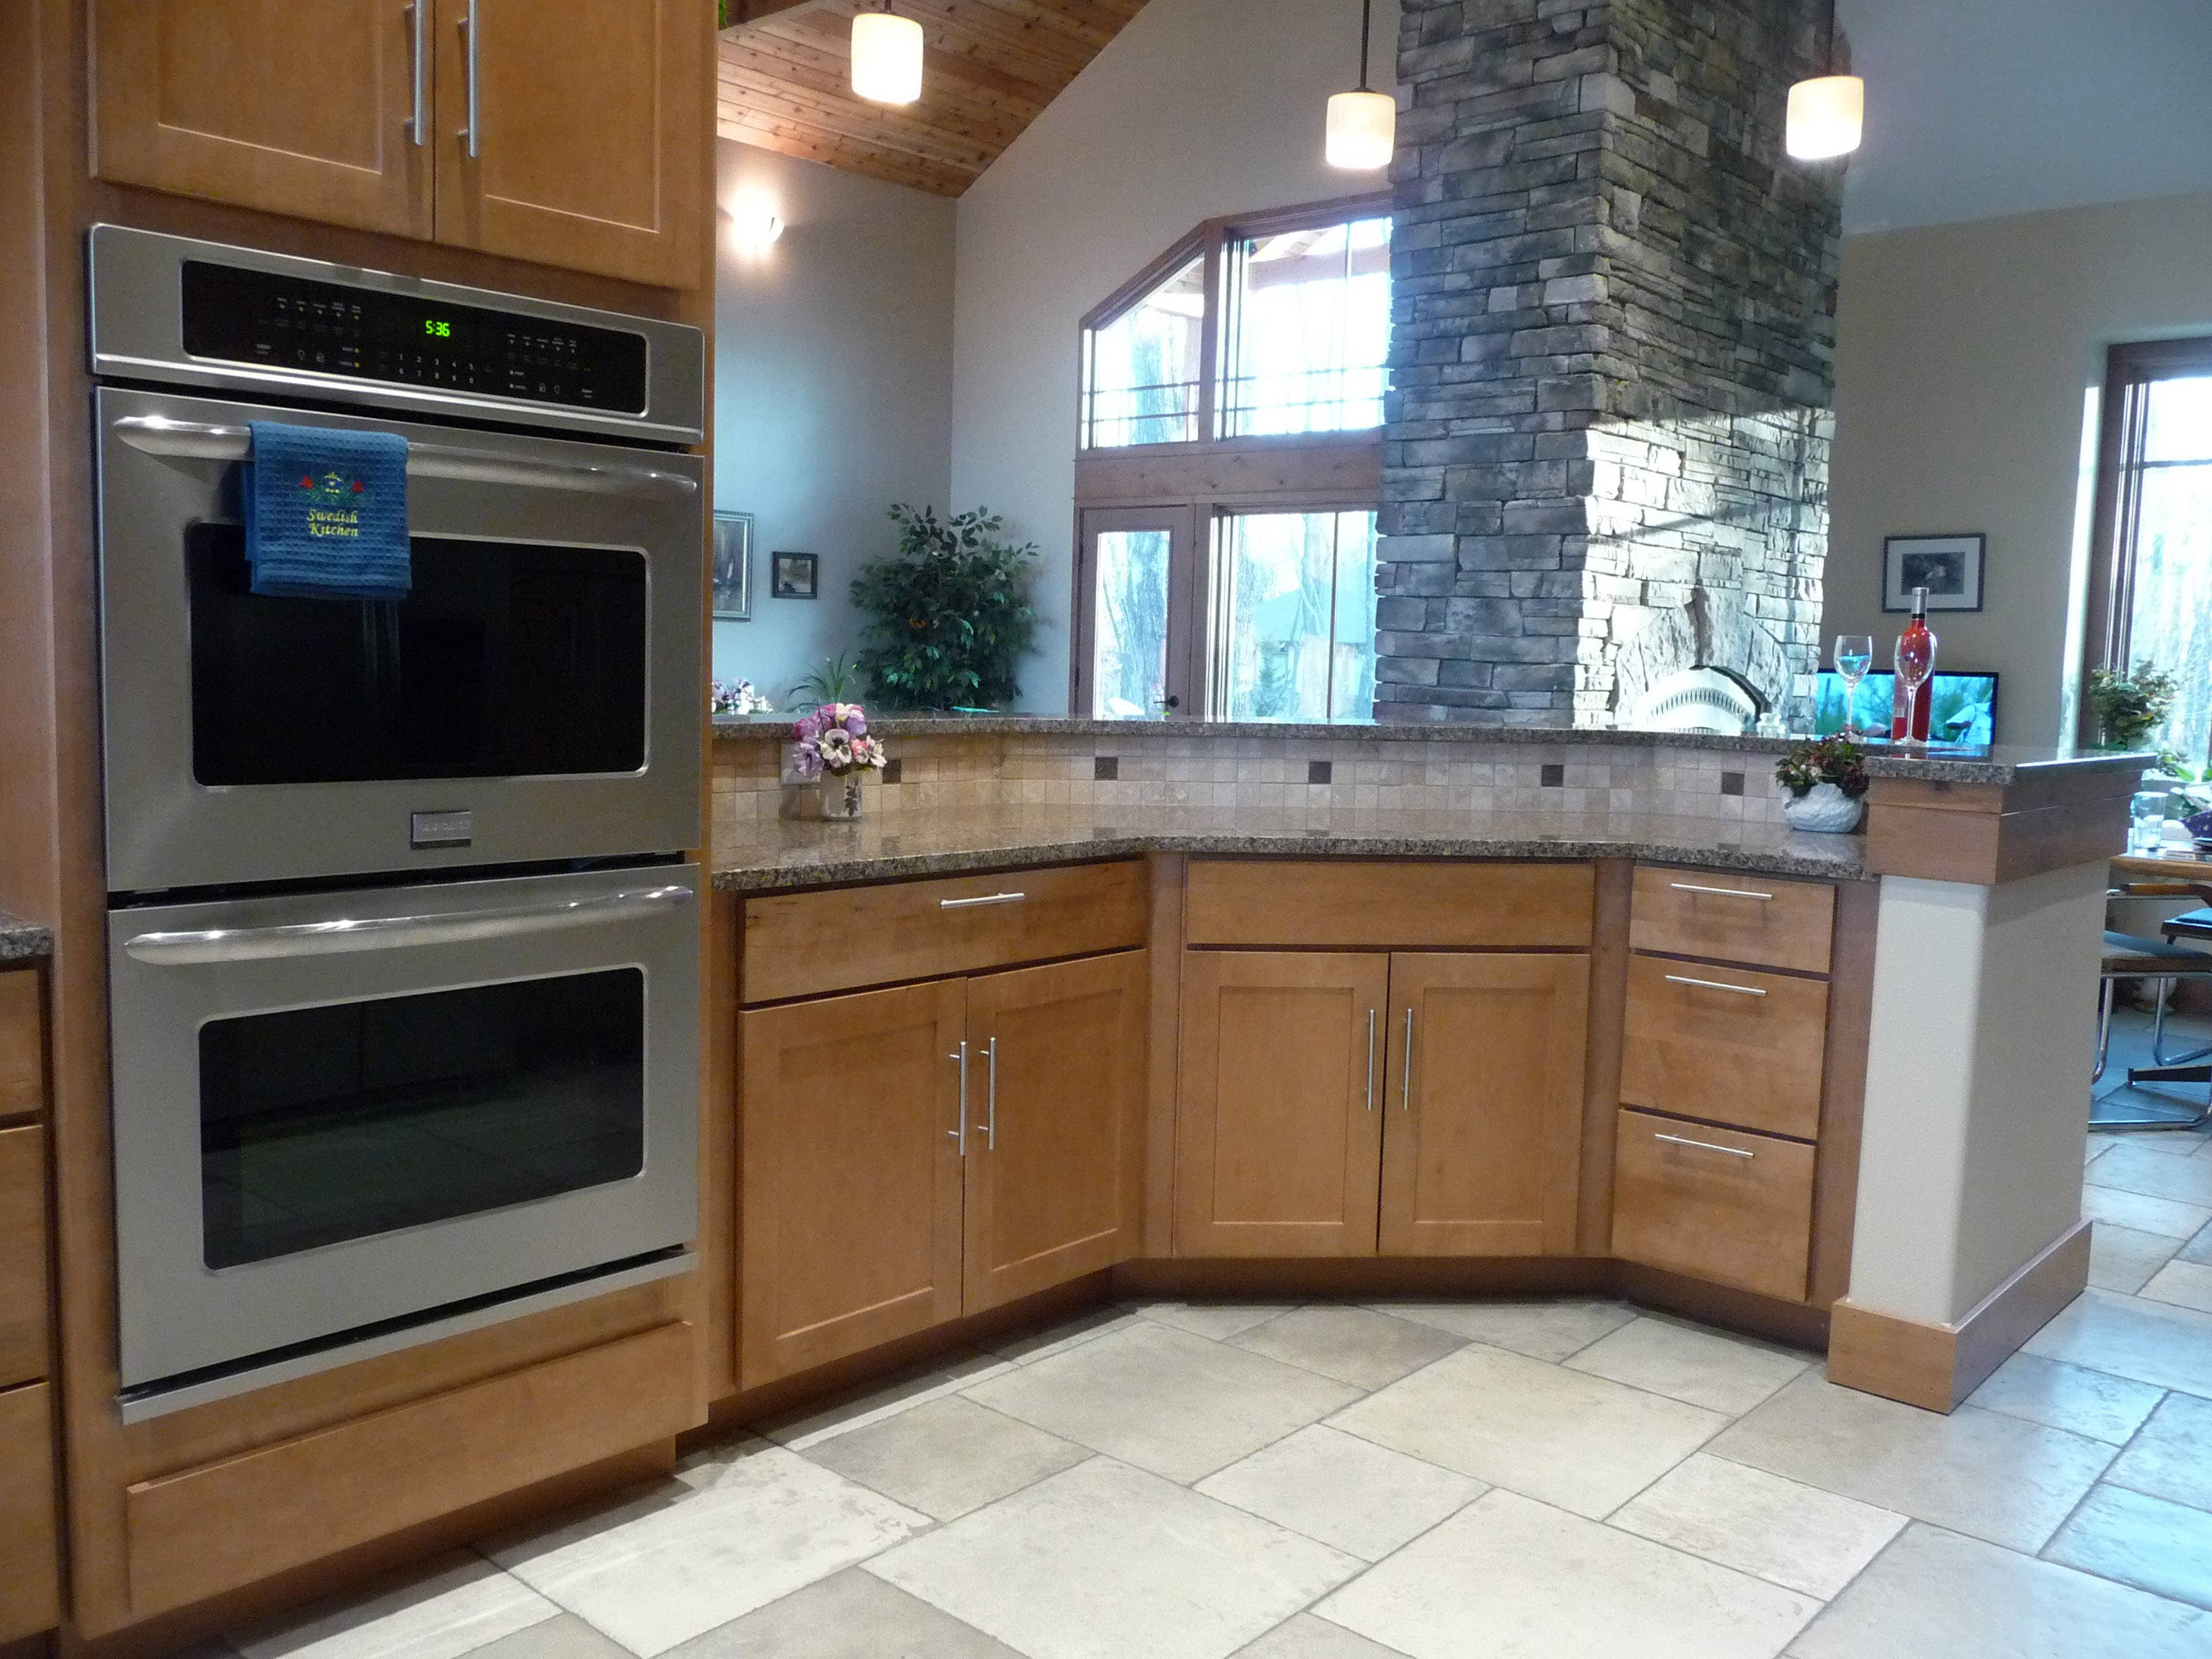 hex kitchen peninsula in maple shaker cabinets adjacent to double wall ovens